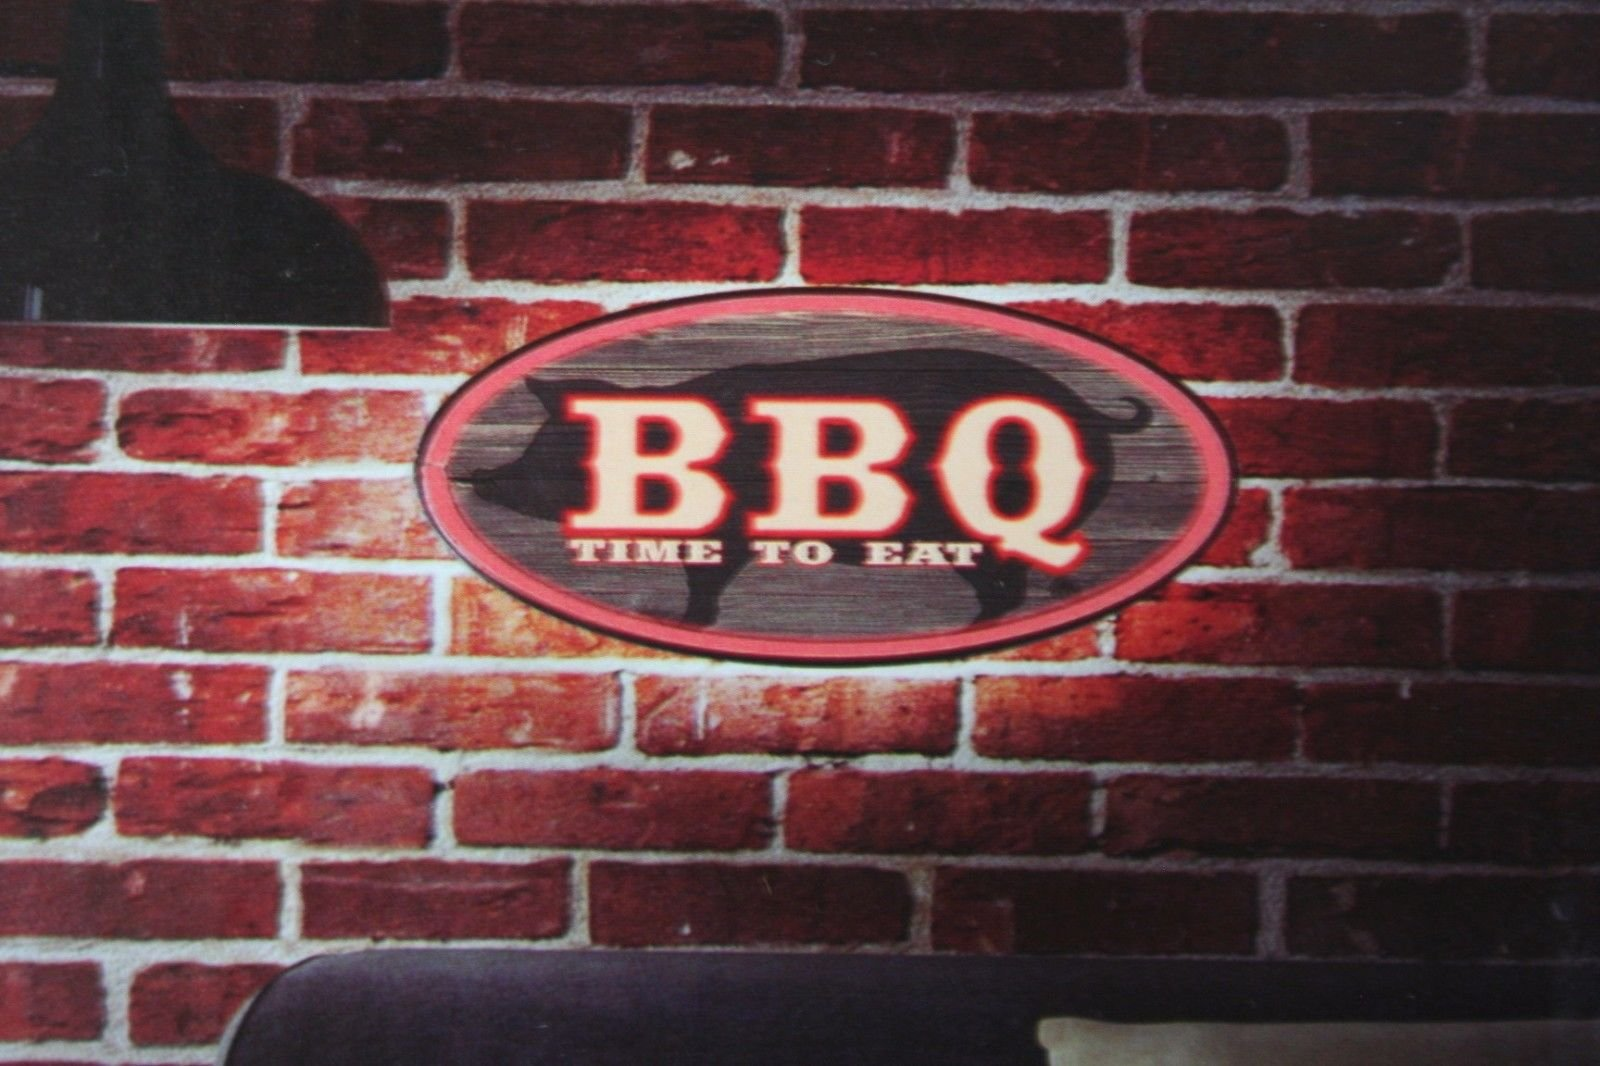 BBQ time 2 eat cook mancave kitchen led lighted neon sign shop garage home decor